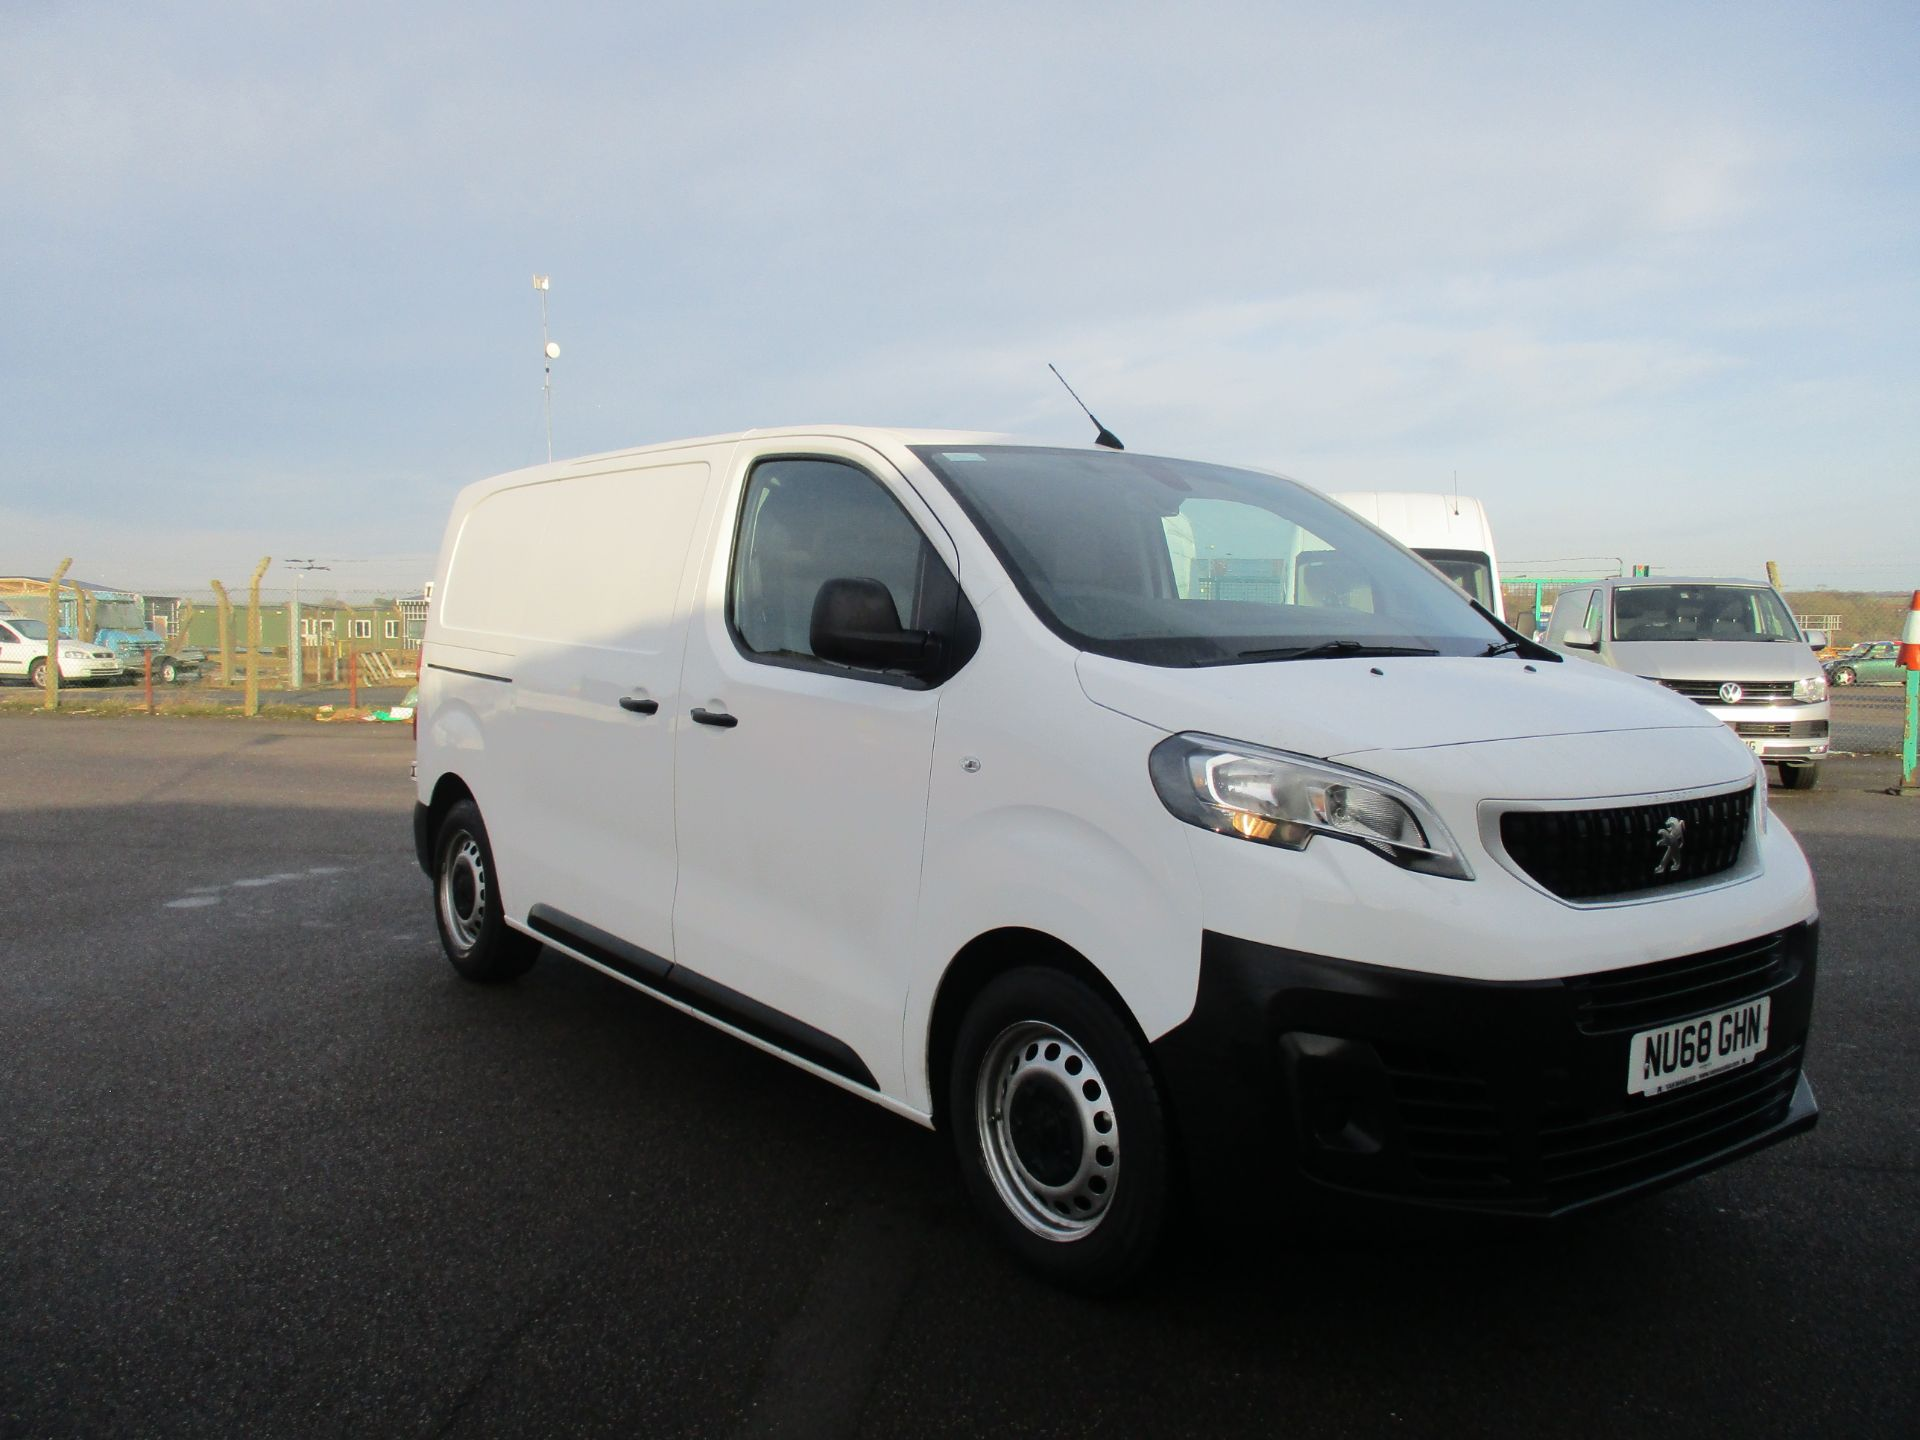 2018 Peugeot Expert STANDARD 1000 1.6 BLUE HDI 95 PROFESSIONAL EURO 6. AIR CON (NU68GHN) Image 1